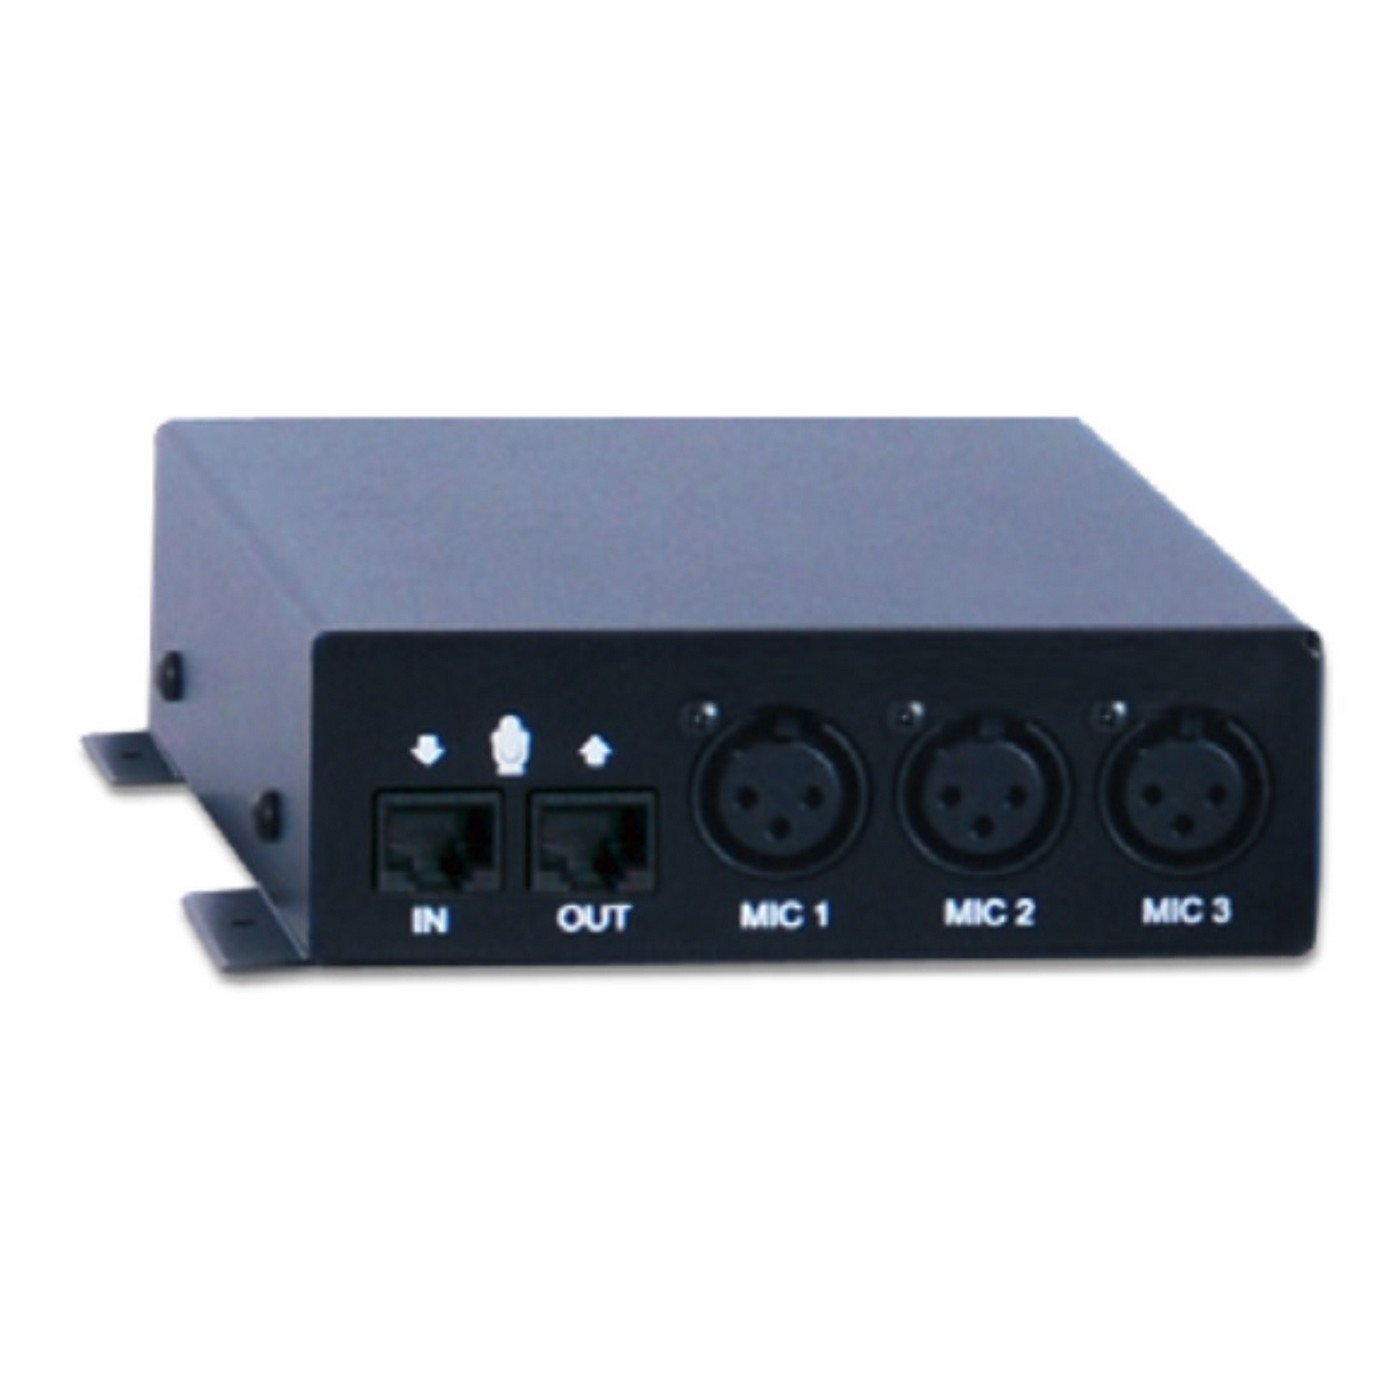 ClearOne Interact MIC EX | 3 XLR Microphone Inputs Breakout Box for Interact AT 910-154-020